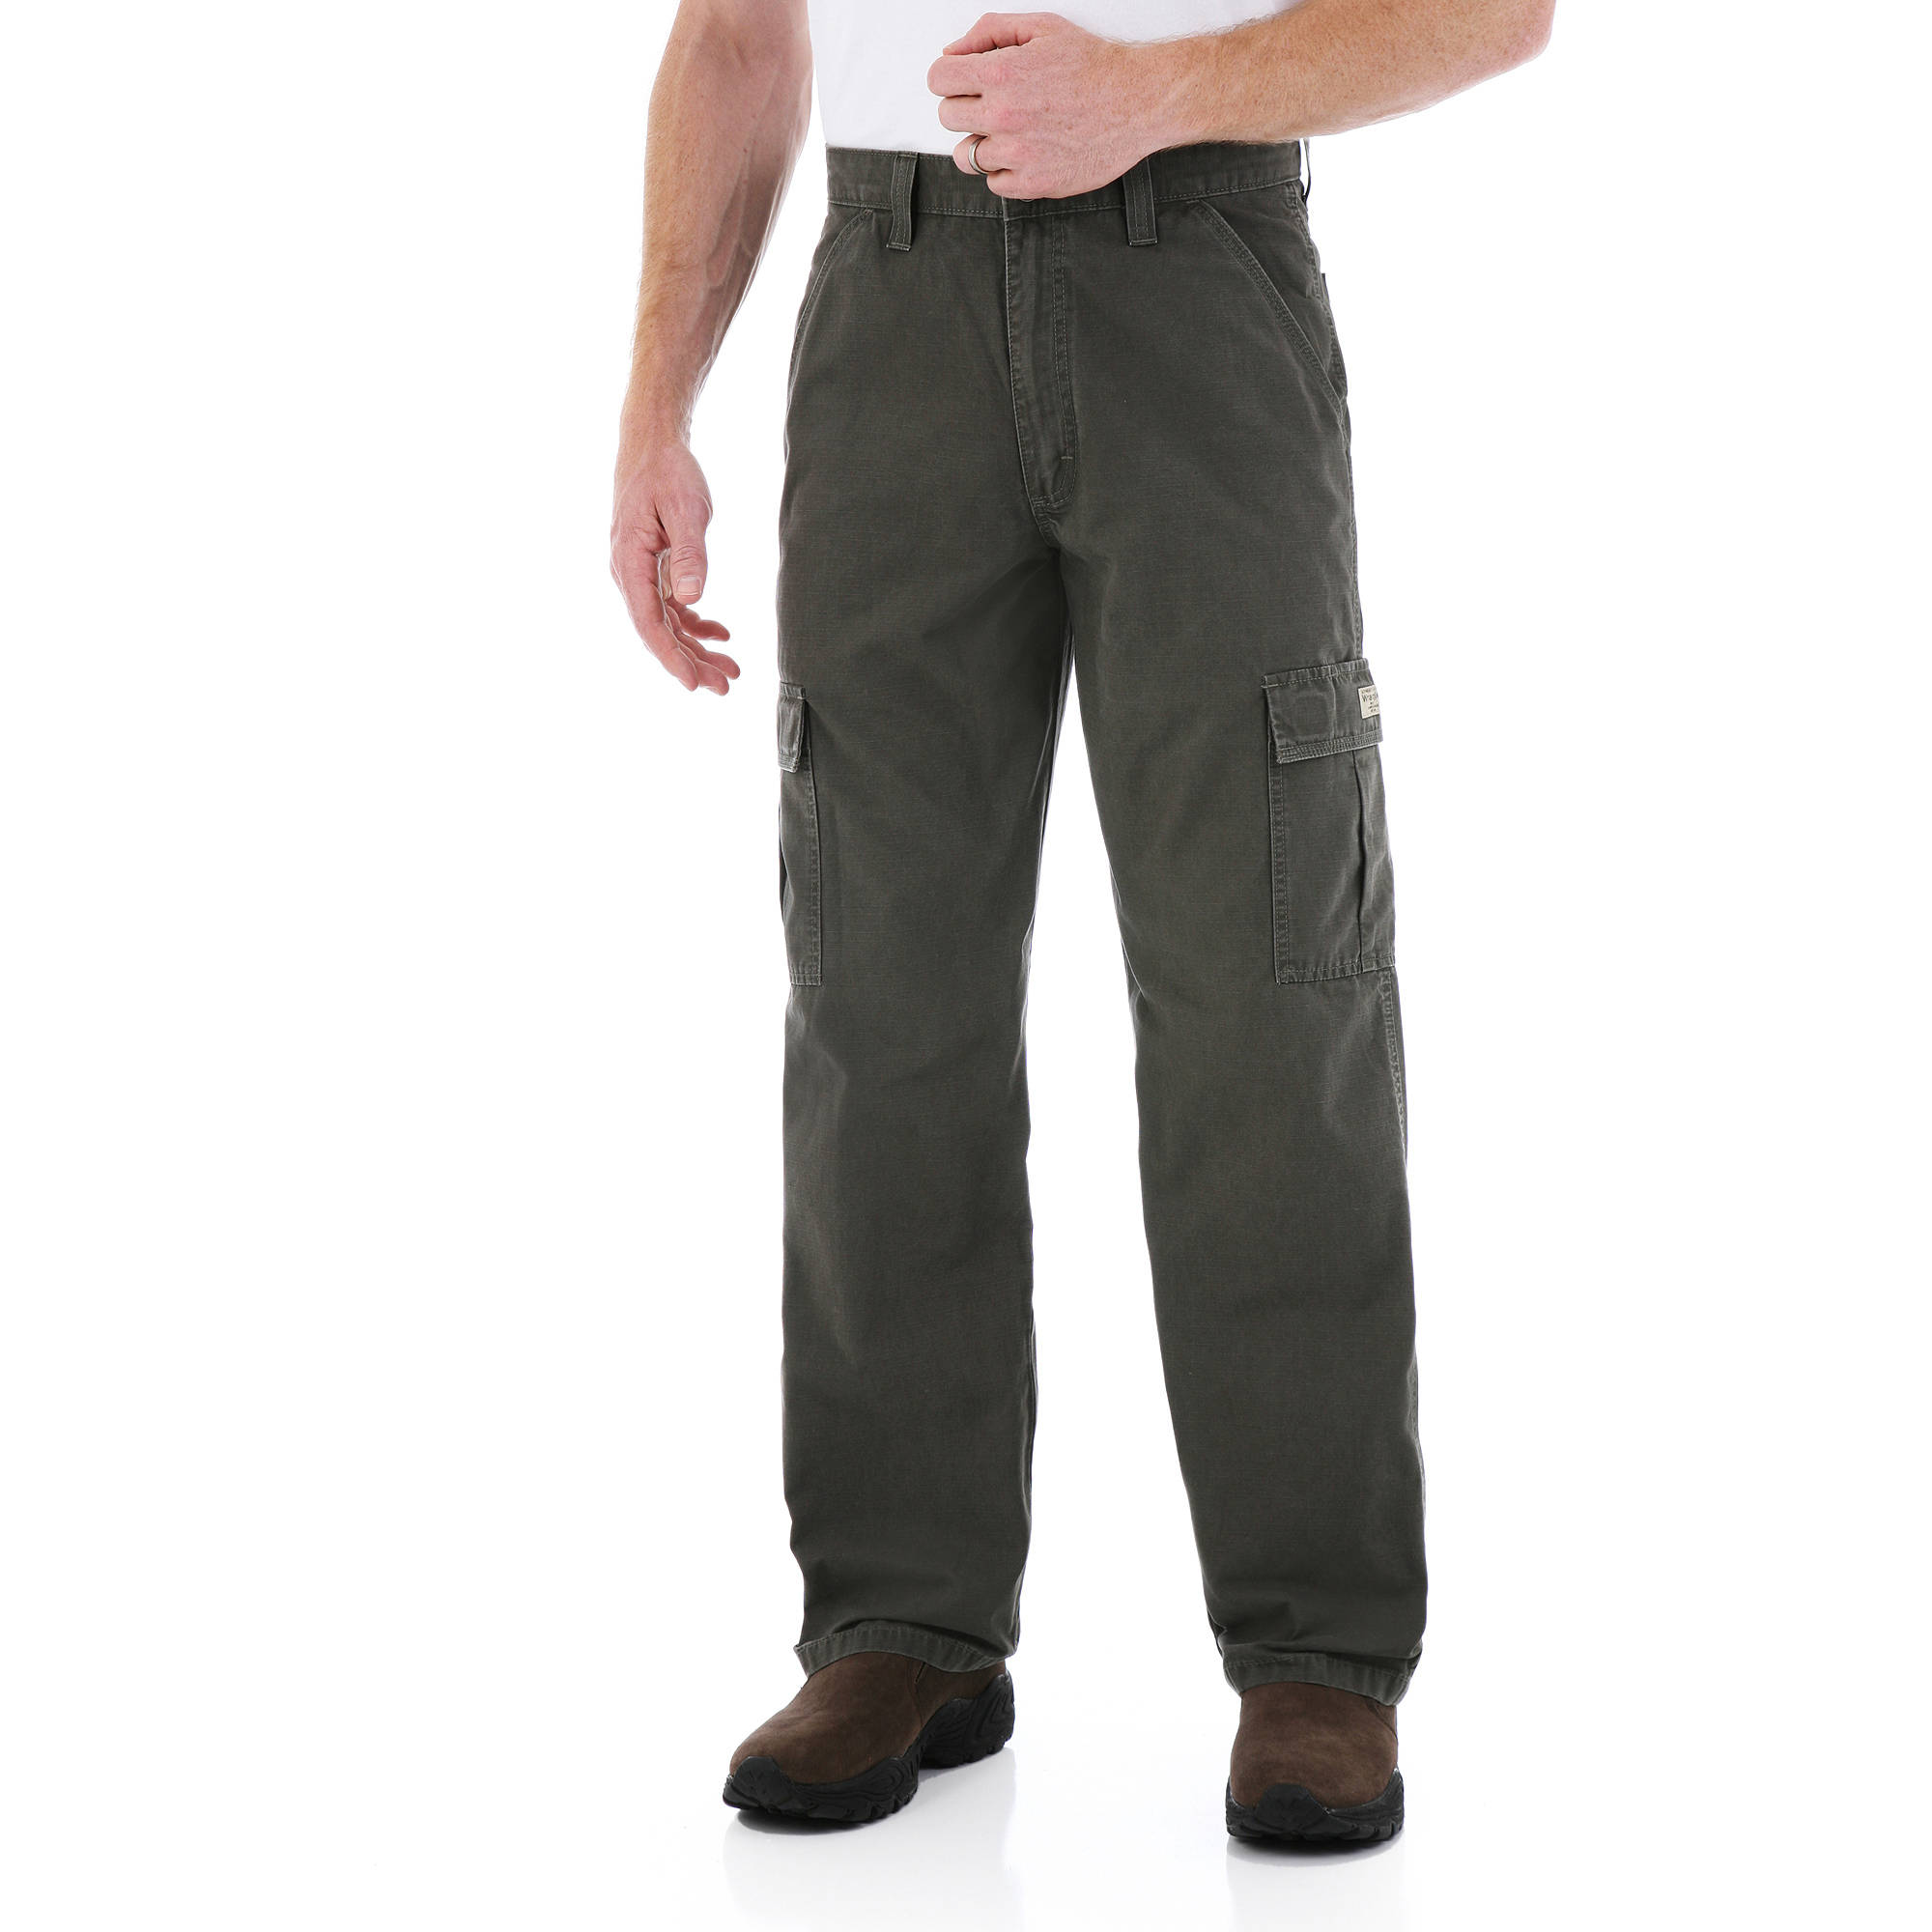 Find great deals on Mens Cargo Pants at Kohl's today! Sponsored Links Outside companies pay to advertise via these links when specific phrases and words are searched. Clicking on these links will open a new tab displaying that respective companys own website. The website you link to is not affiliated with or sponsored by whomeverf.cf